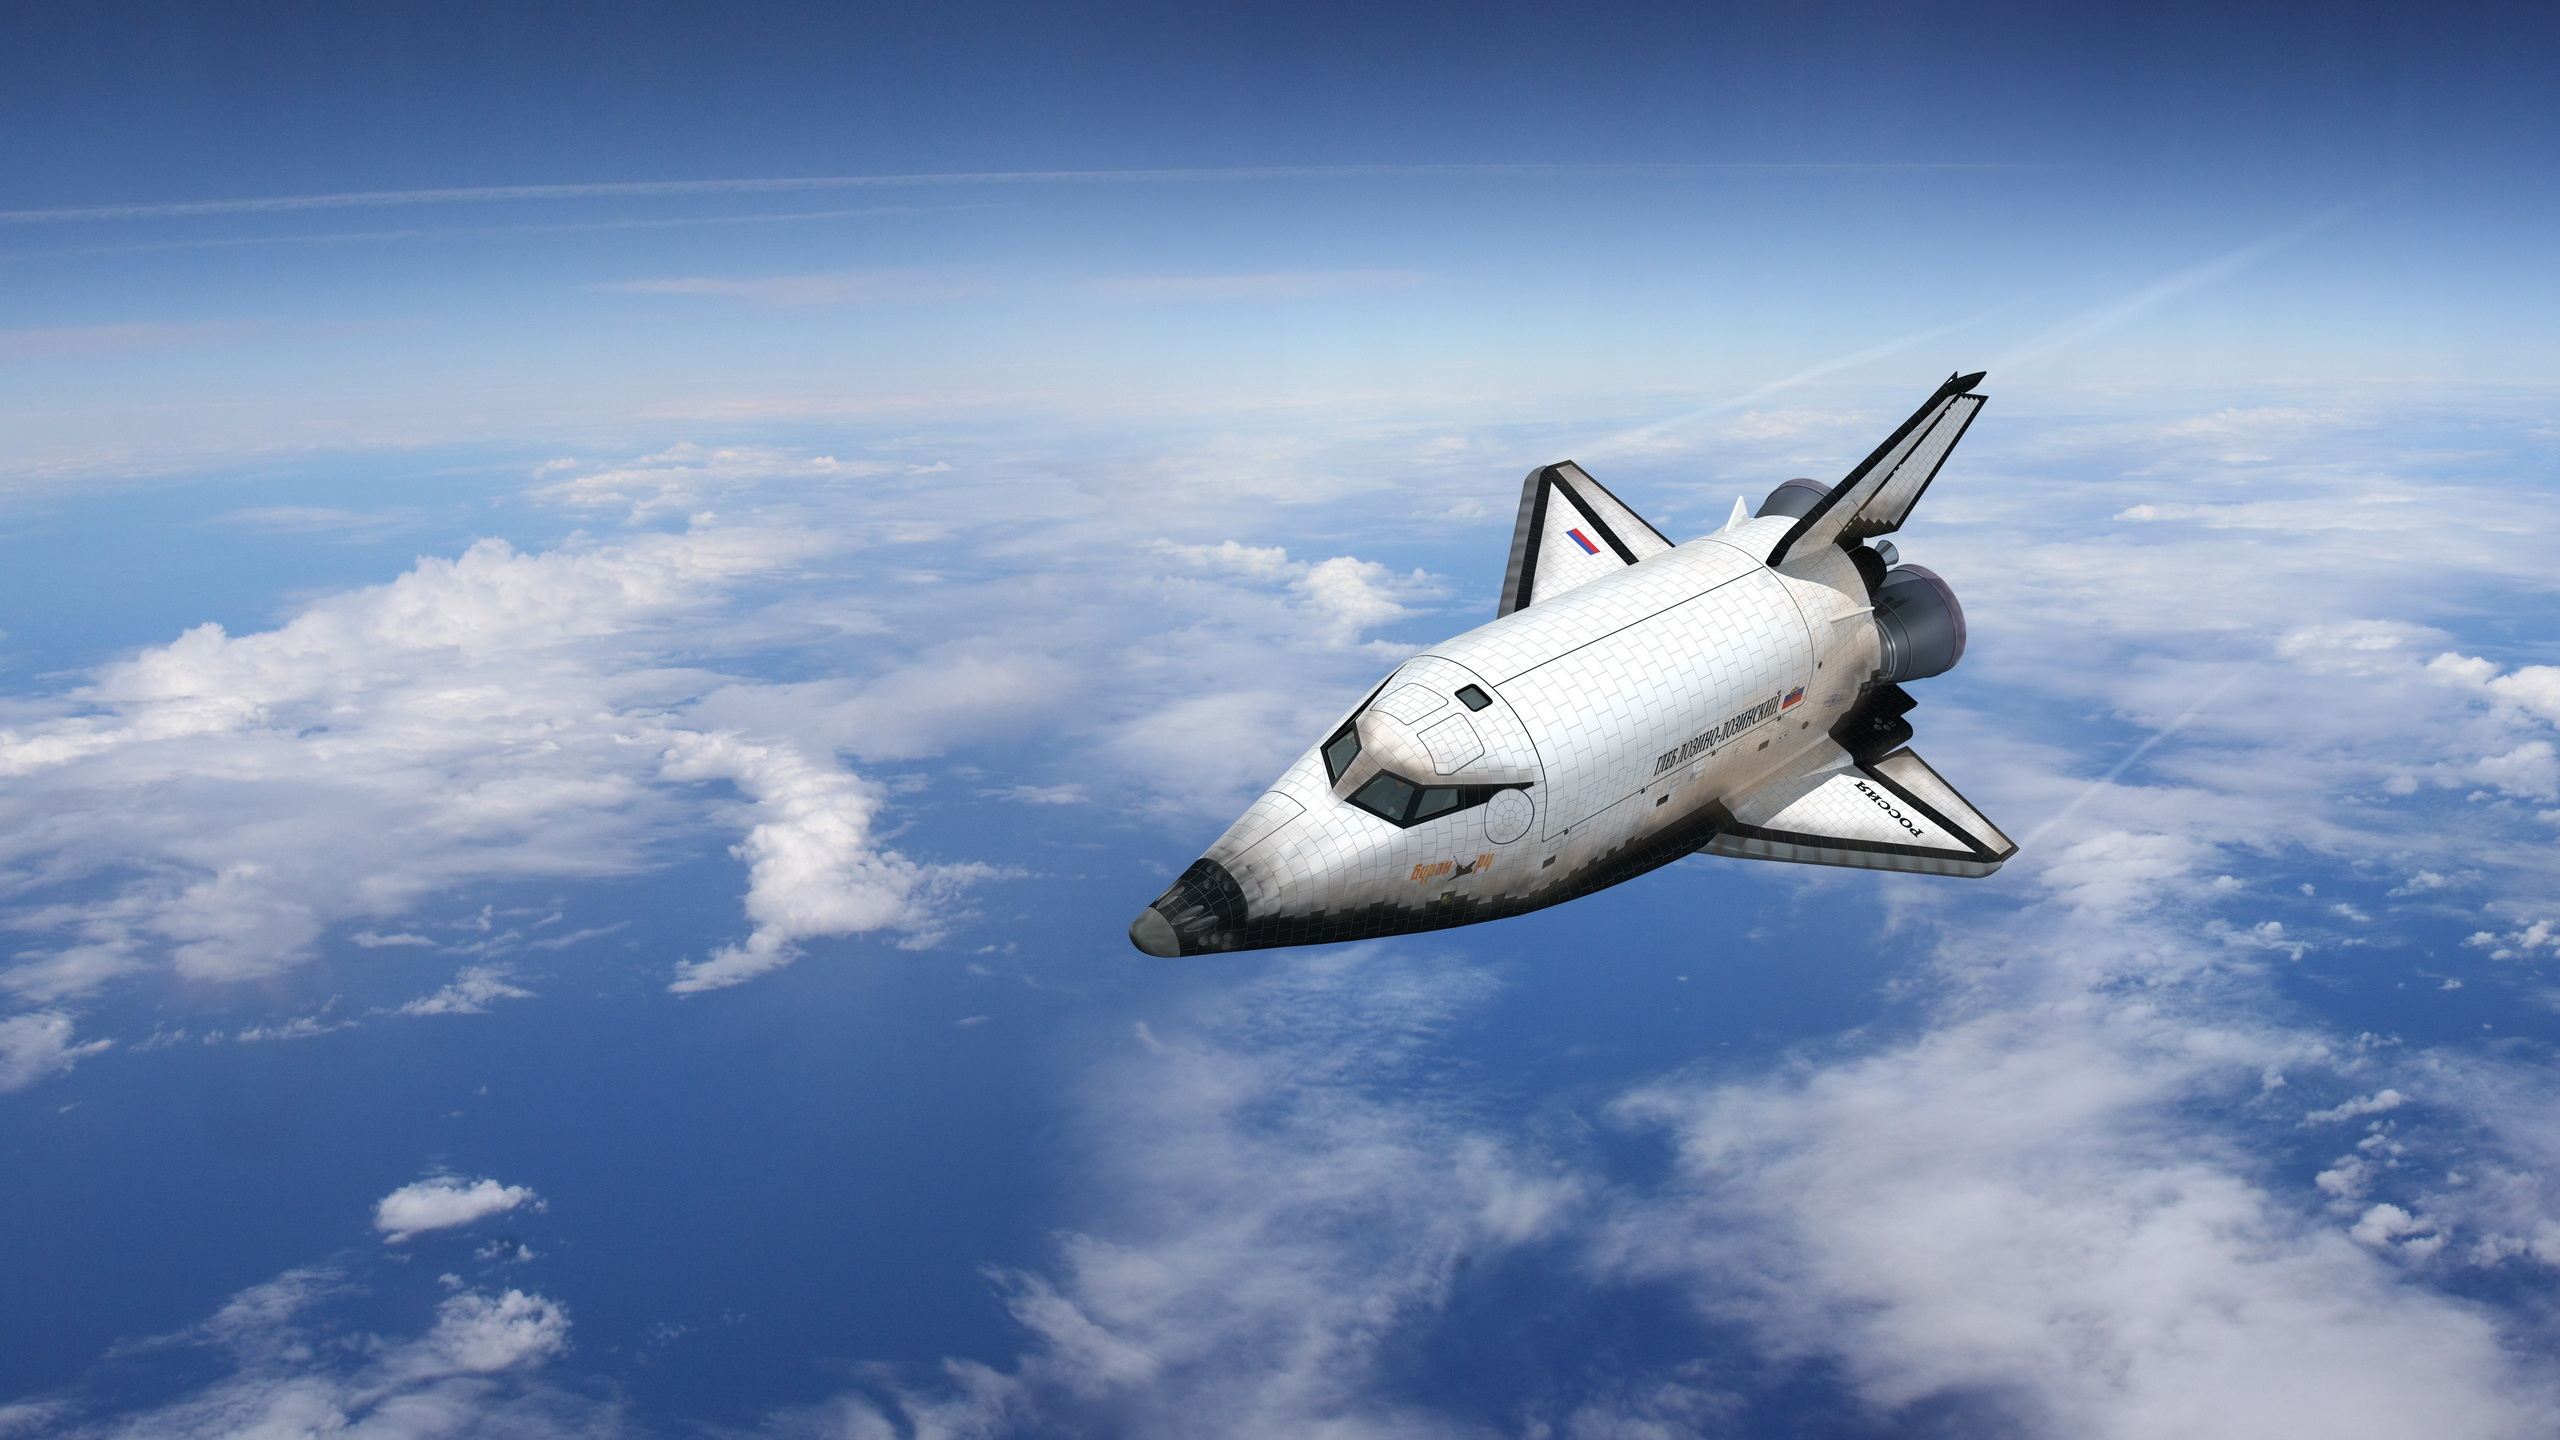 Space shuttle flying over the Earth Wallpaper 2560x1440 resolution 2560x1440